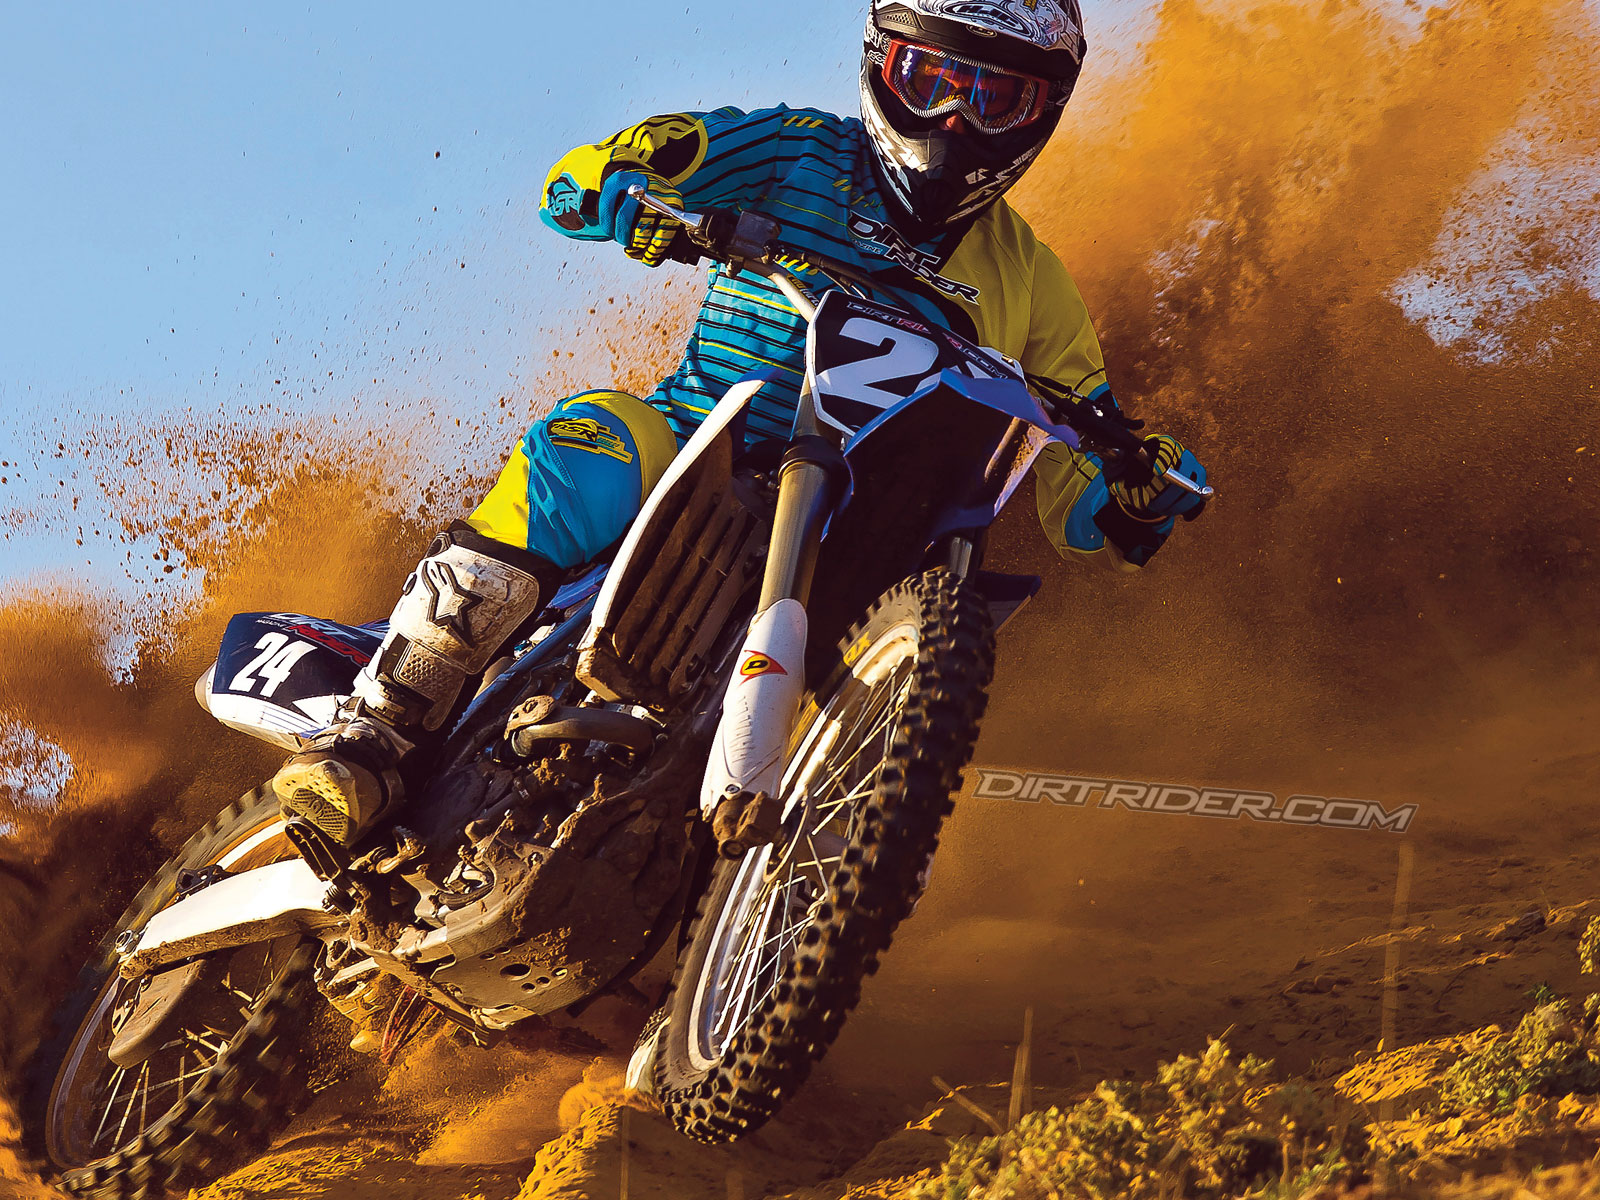 full wallpaper dirt bike wallpapers